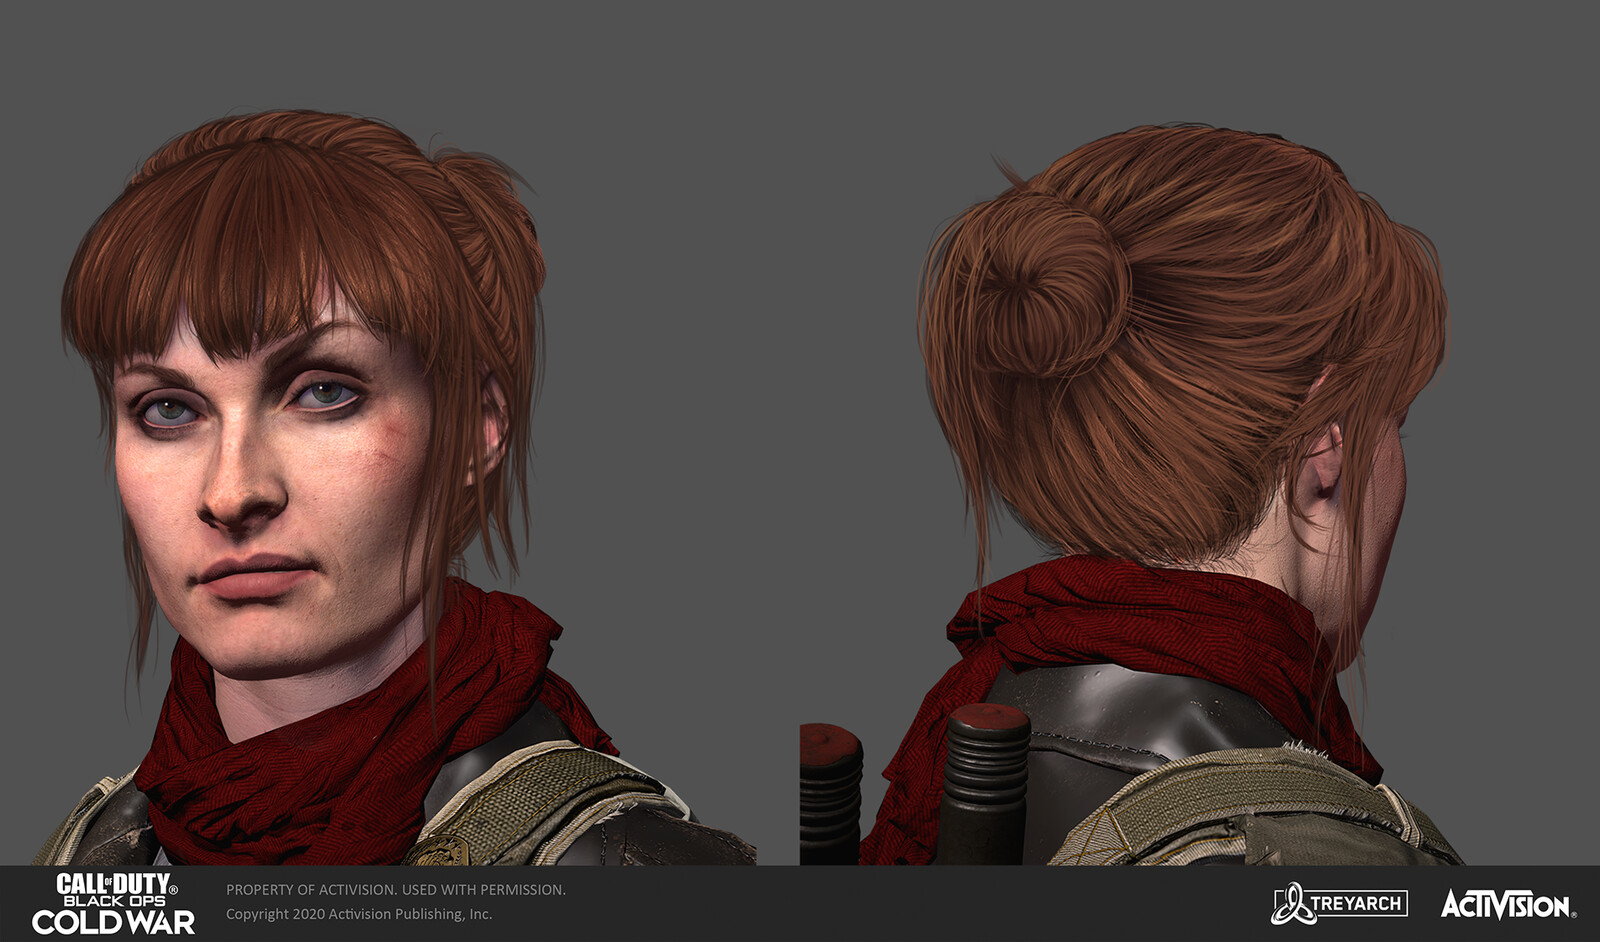 Final concept. I ended up giving her bangs more of a swoop on the model itself at the last minute, just to break up the symmetry :)